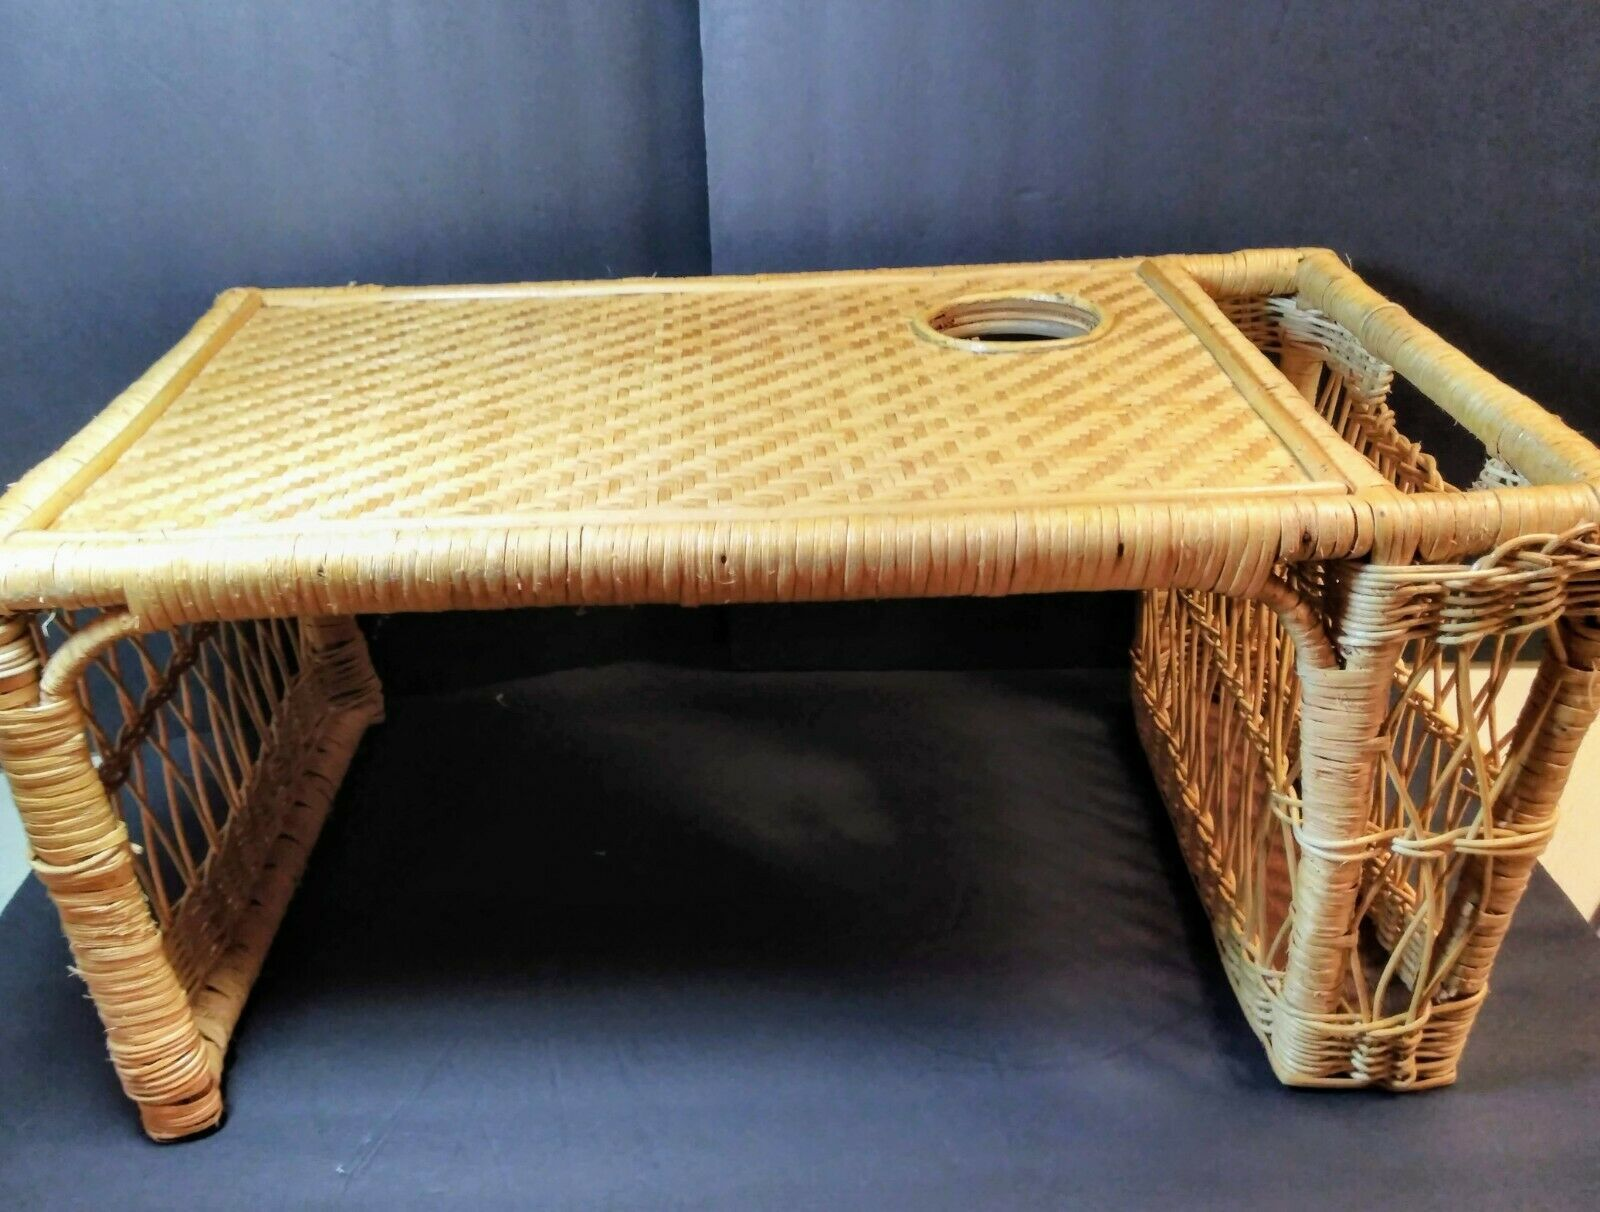 Primary image for Vintage Bamboo Wicker Breakfast Bed Tray Newspaper Book Holder Rattan Woven